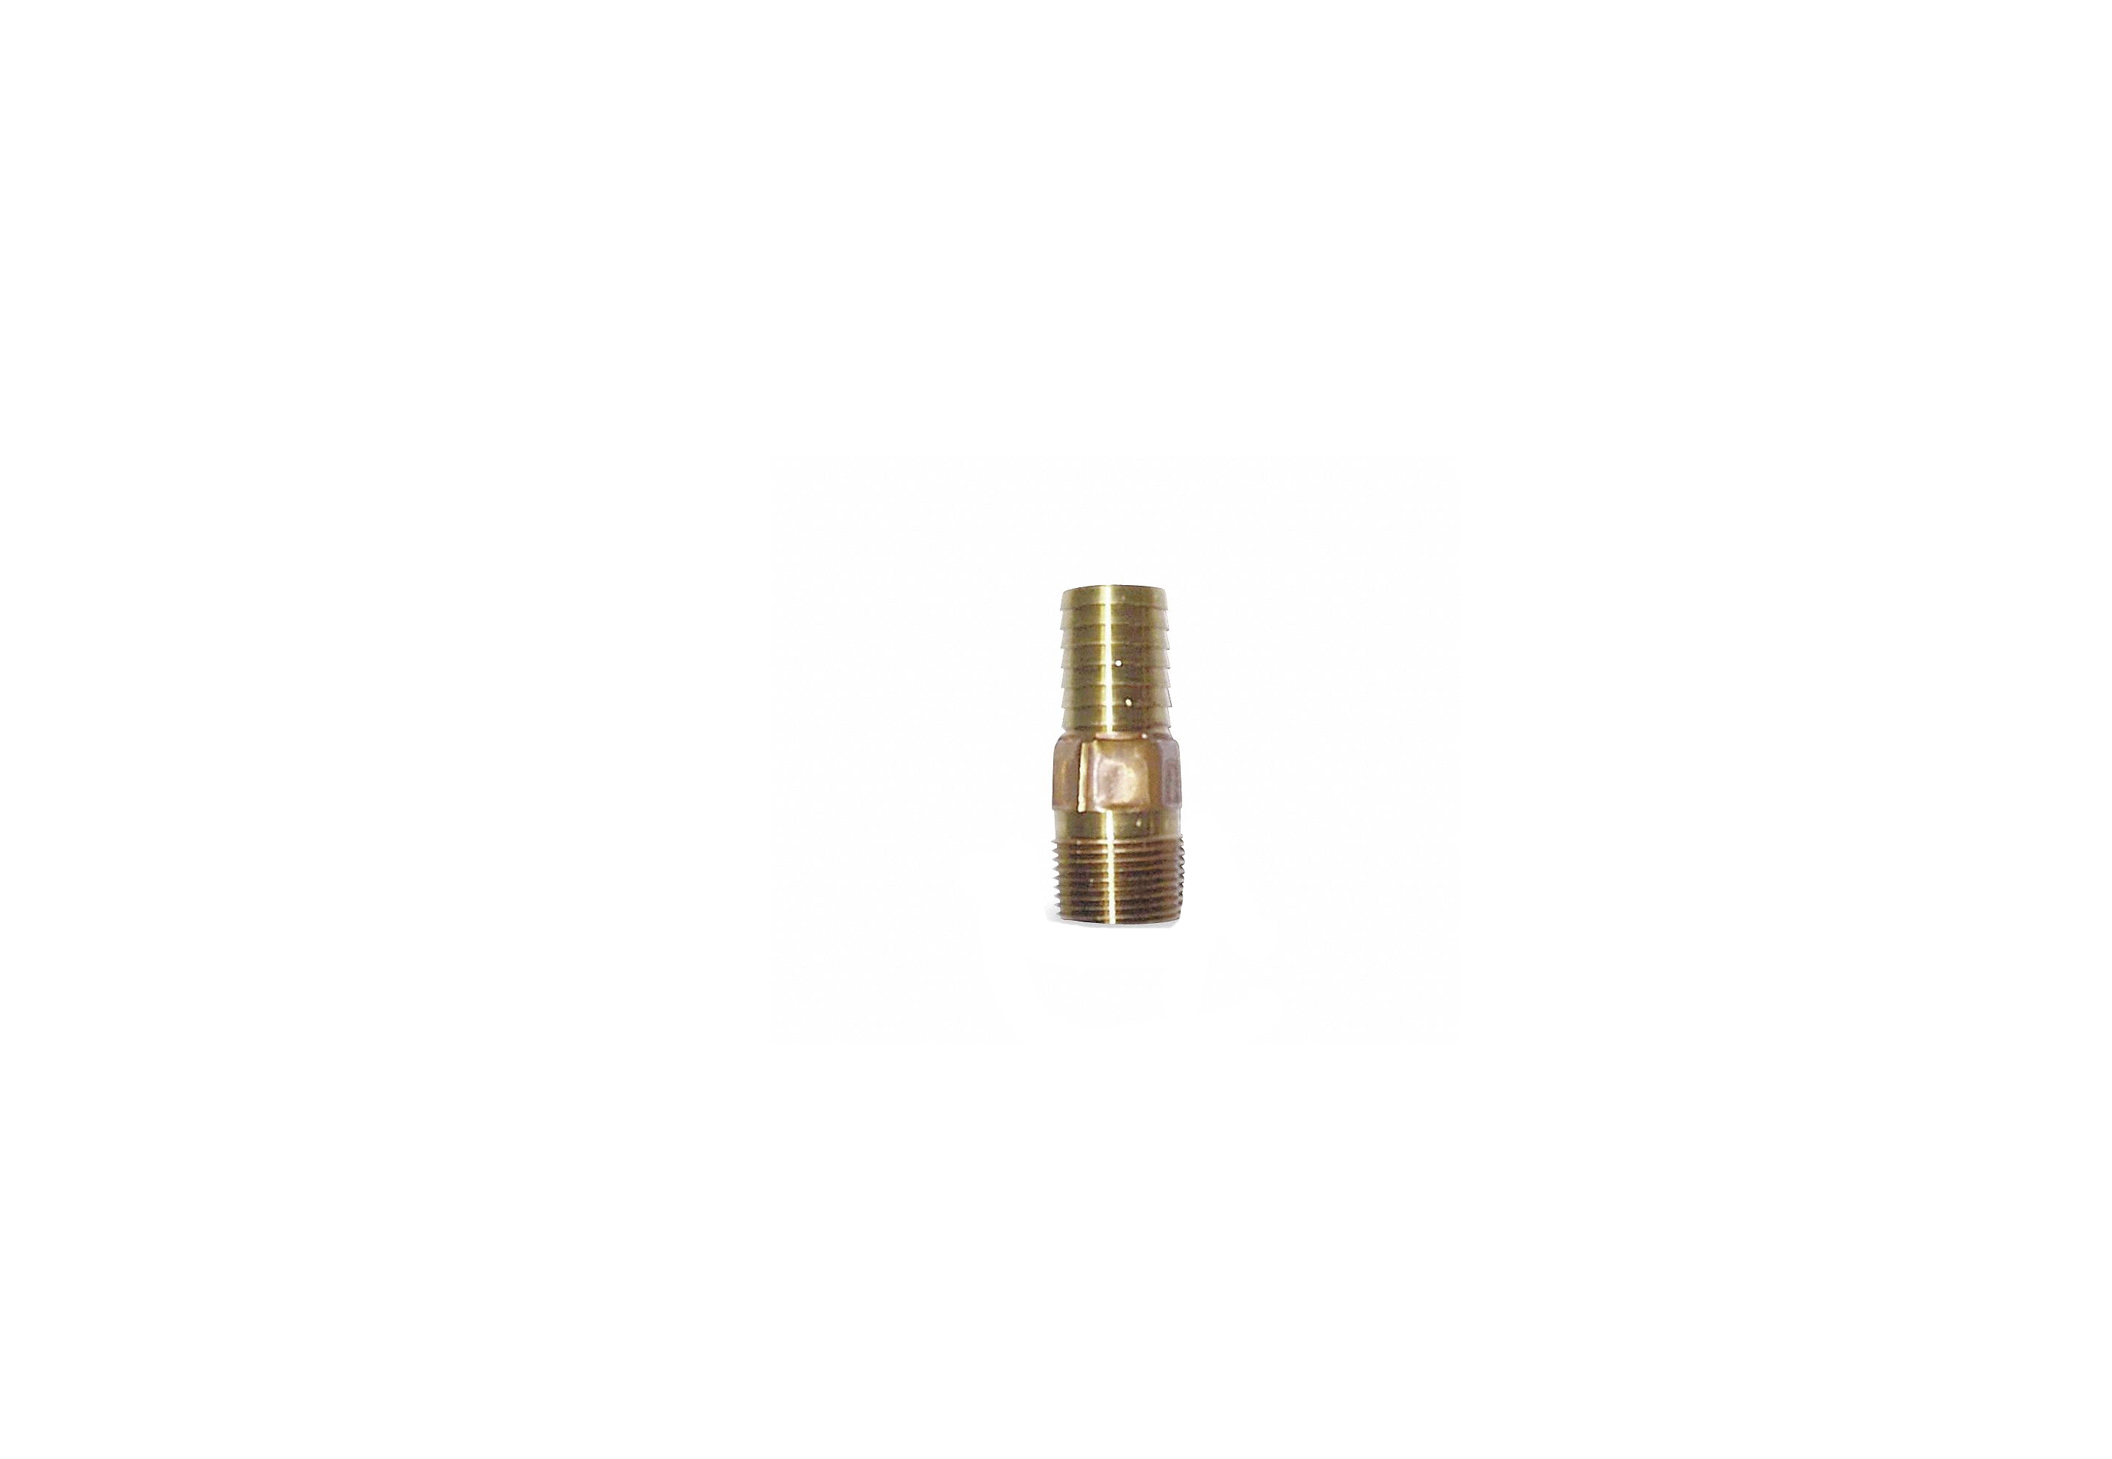 Hose-Kit-Parts - Hose-Barb-1-NPT-X-1-14